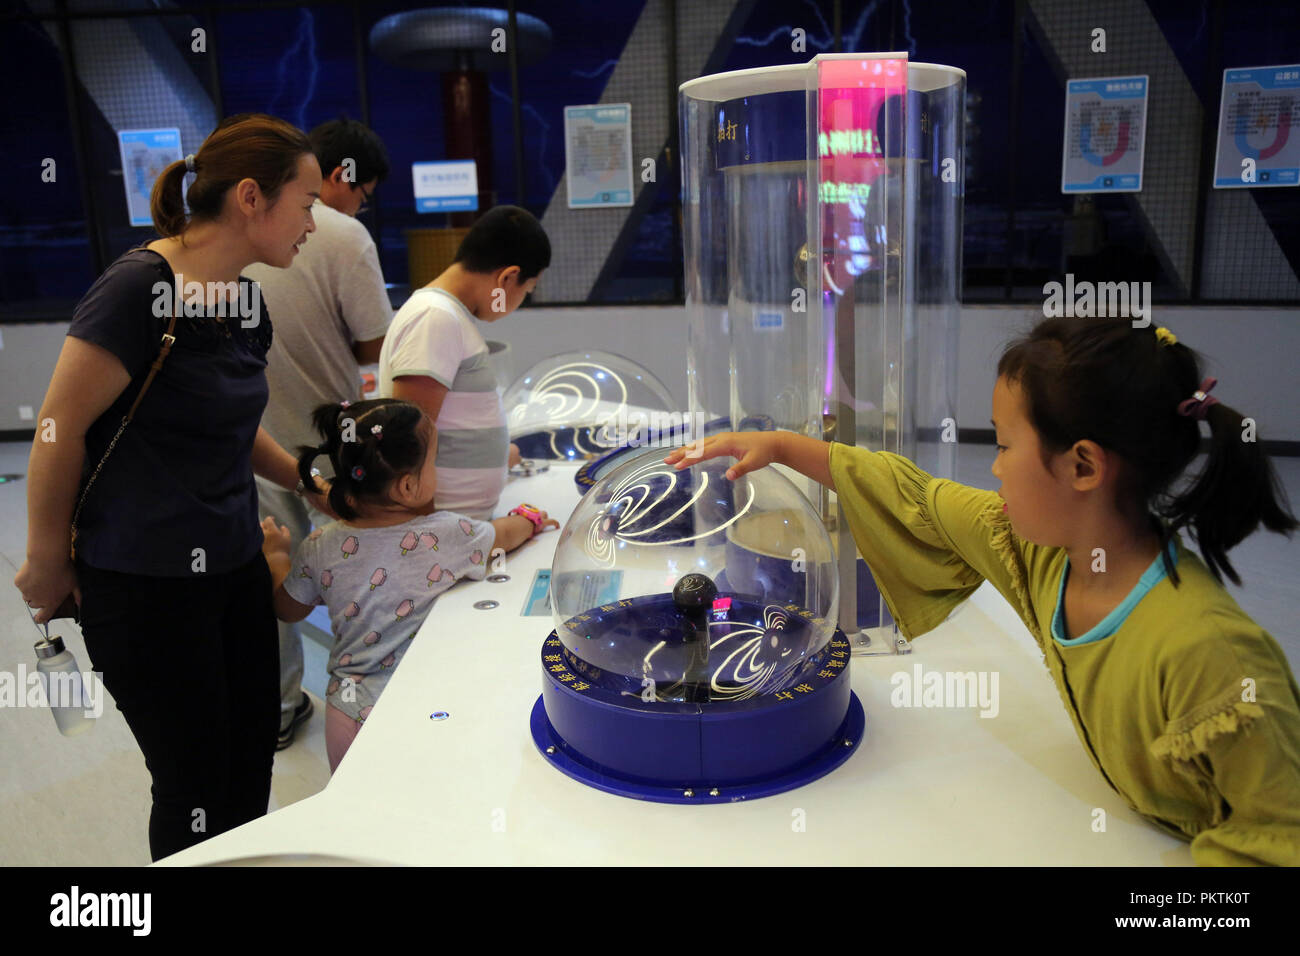 Binzhou, China's Shandong Province. 15th Sep, 2018. Children accompanied by their parents experience electromagnetic devices at Science and Technology Museum in Binzhou, east China's Shandong Province, Sept. 15, 2018. Various activities are scheduled to be held from Sept. 15 to Sept. 21 across China to greet the 2018 National Science Day held each year. Credit: Chen Bin/Xinhua/Alamy Live News - Stock Image